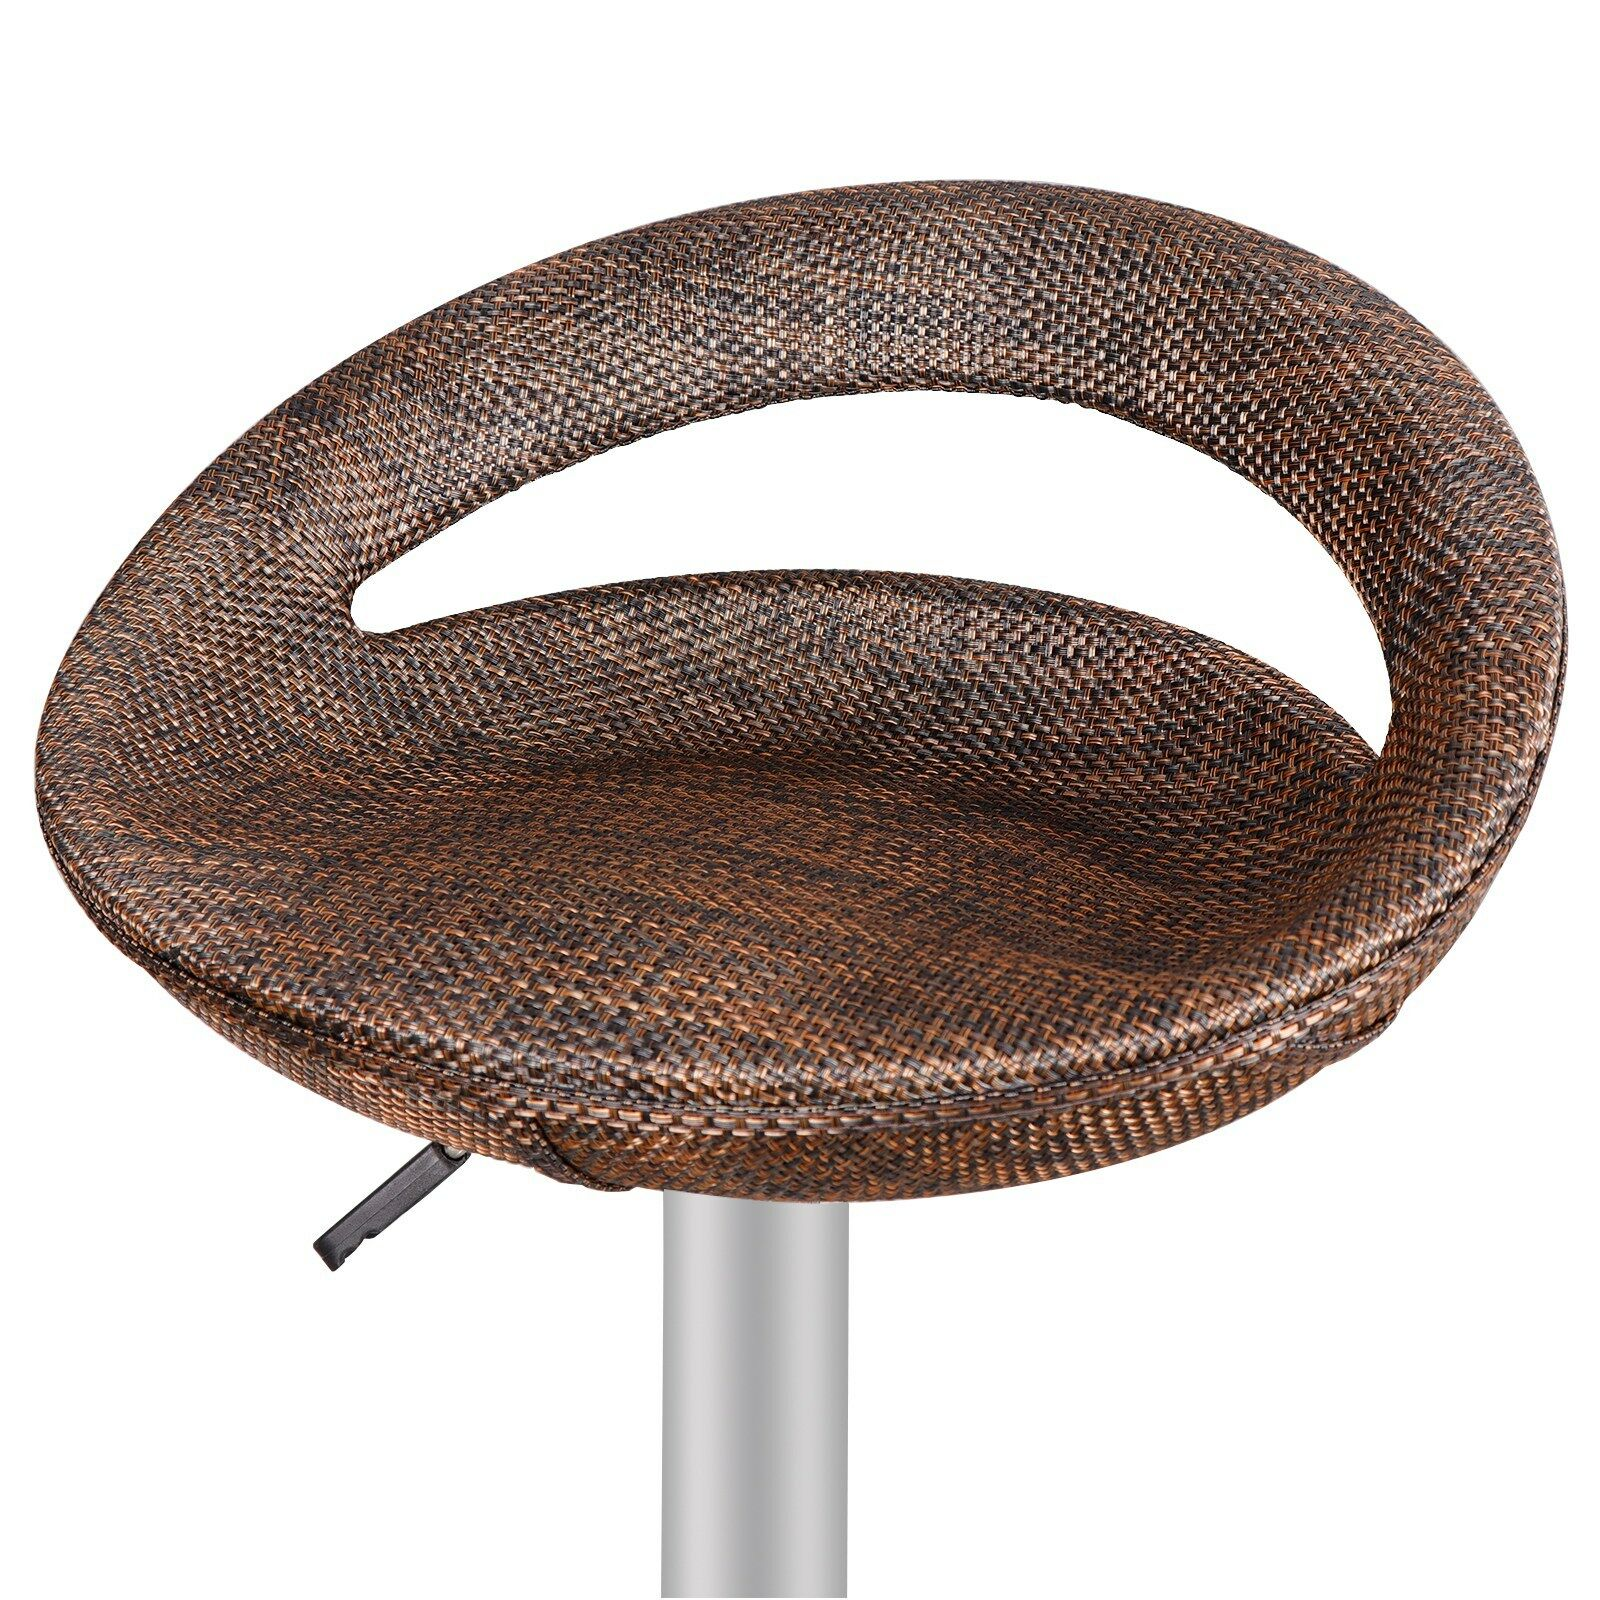 Wicker Barstool Indoor Outdoor Patio Furniture All Weather Bar Stool Brown Benches, Stools & Bar Stools